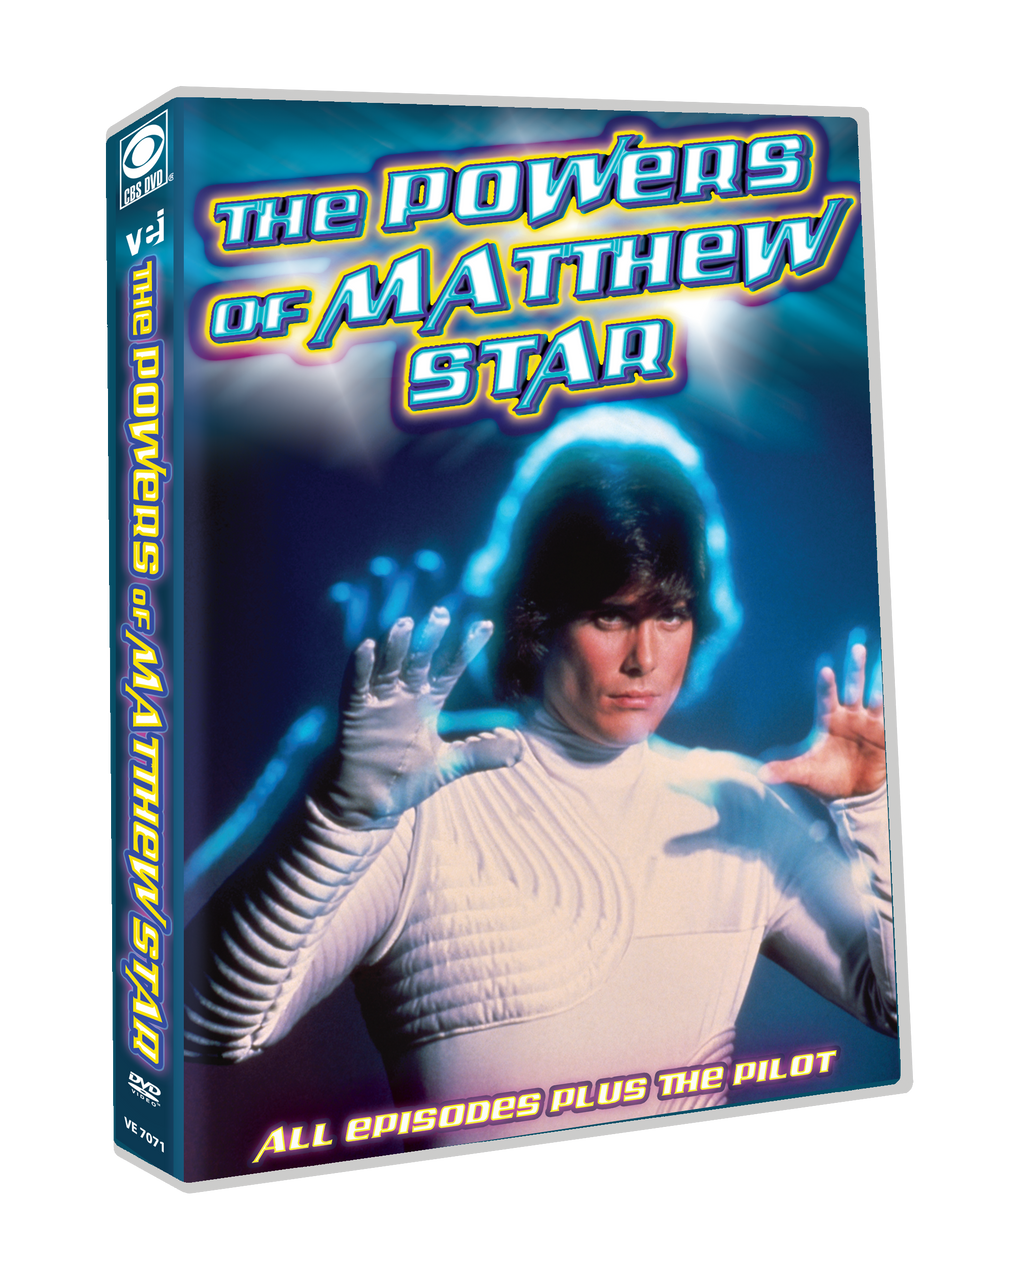 The Powers of Matthew Star - All Episodes plus The Pilot  #7071